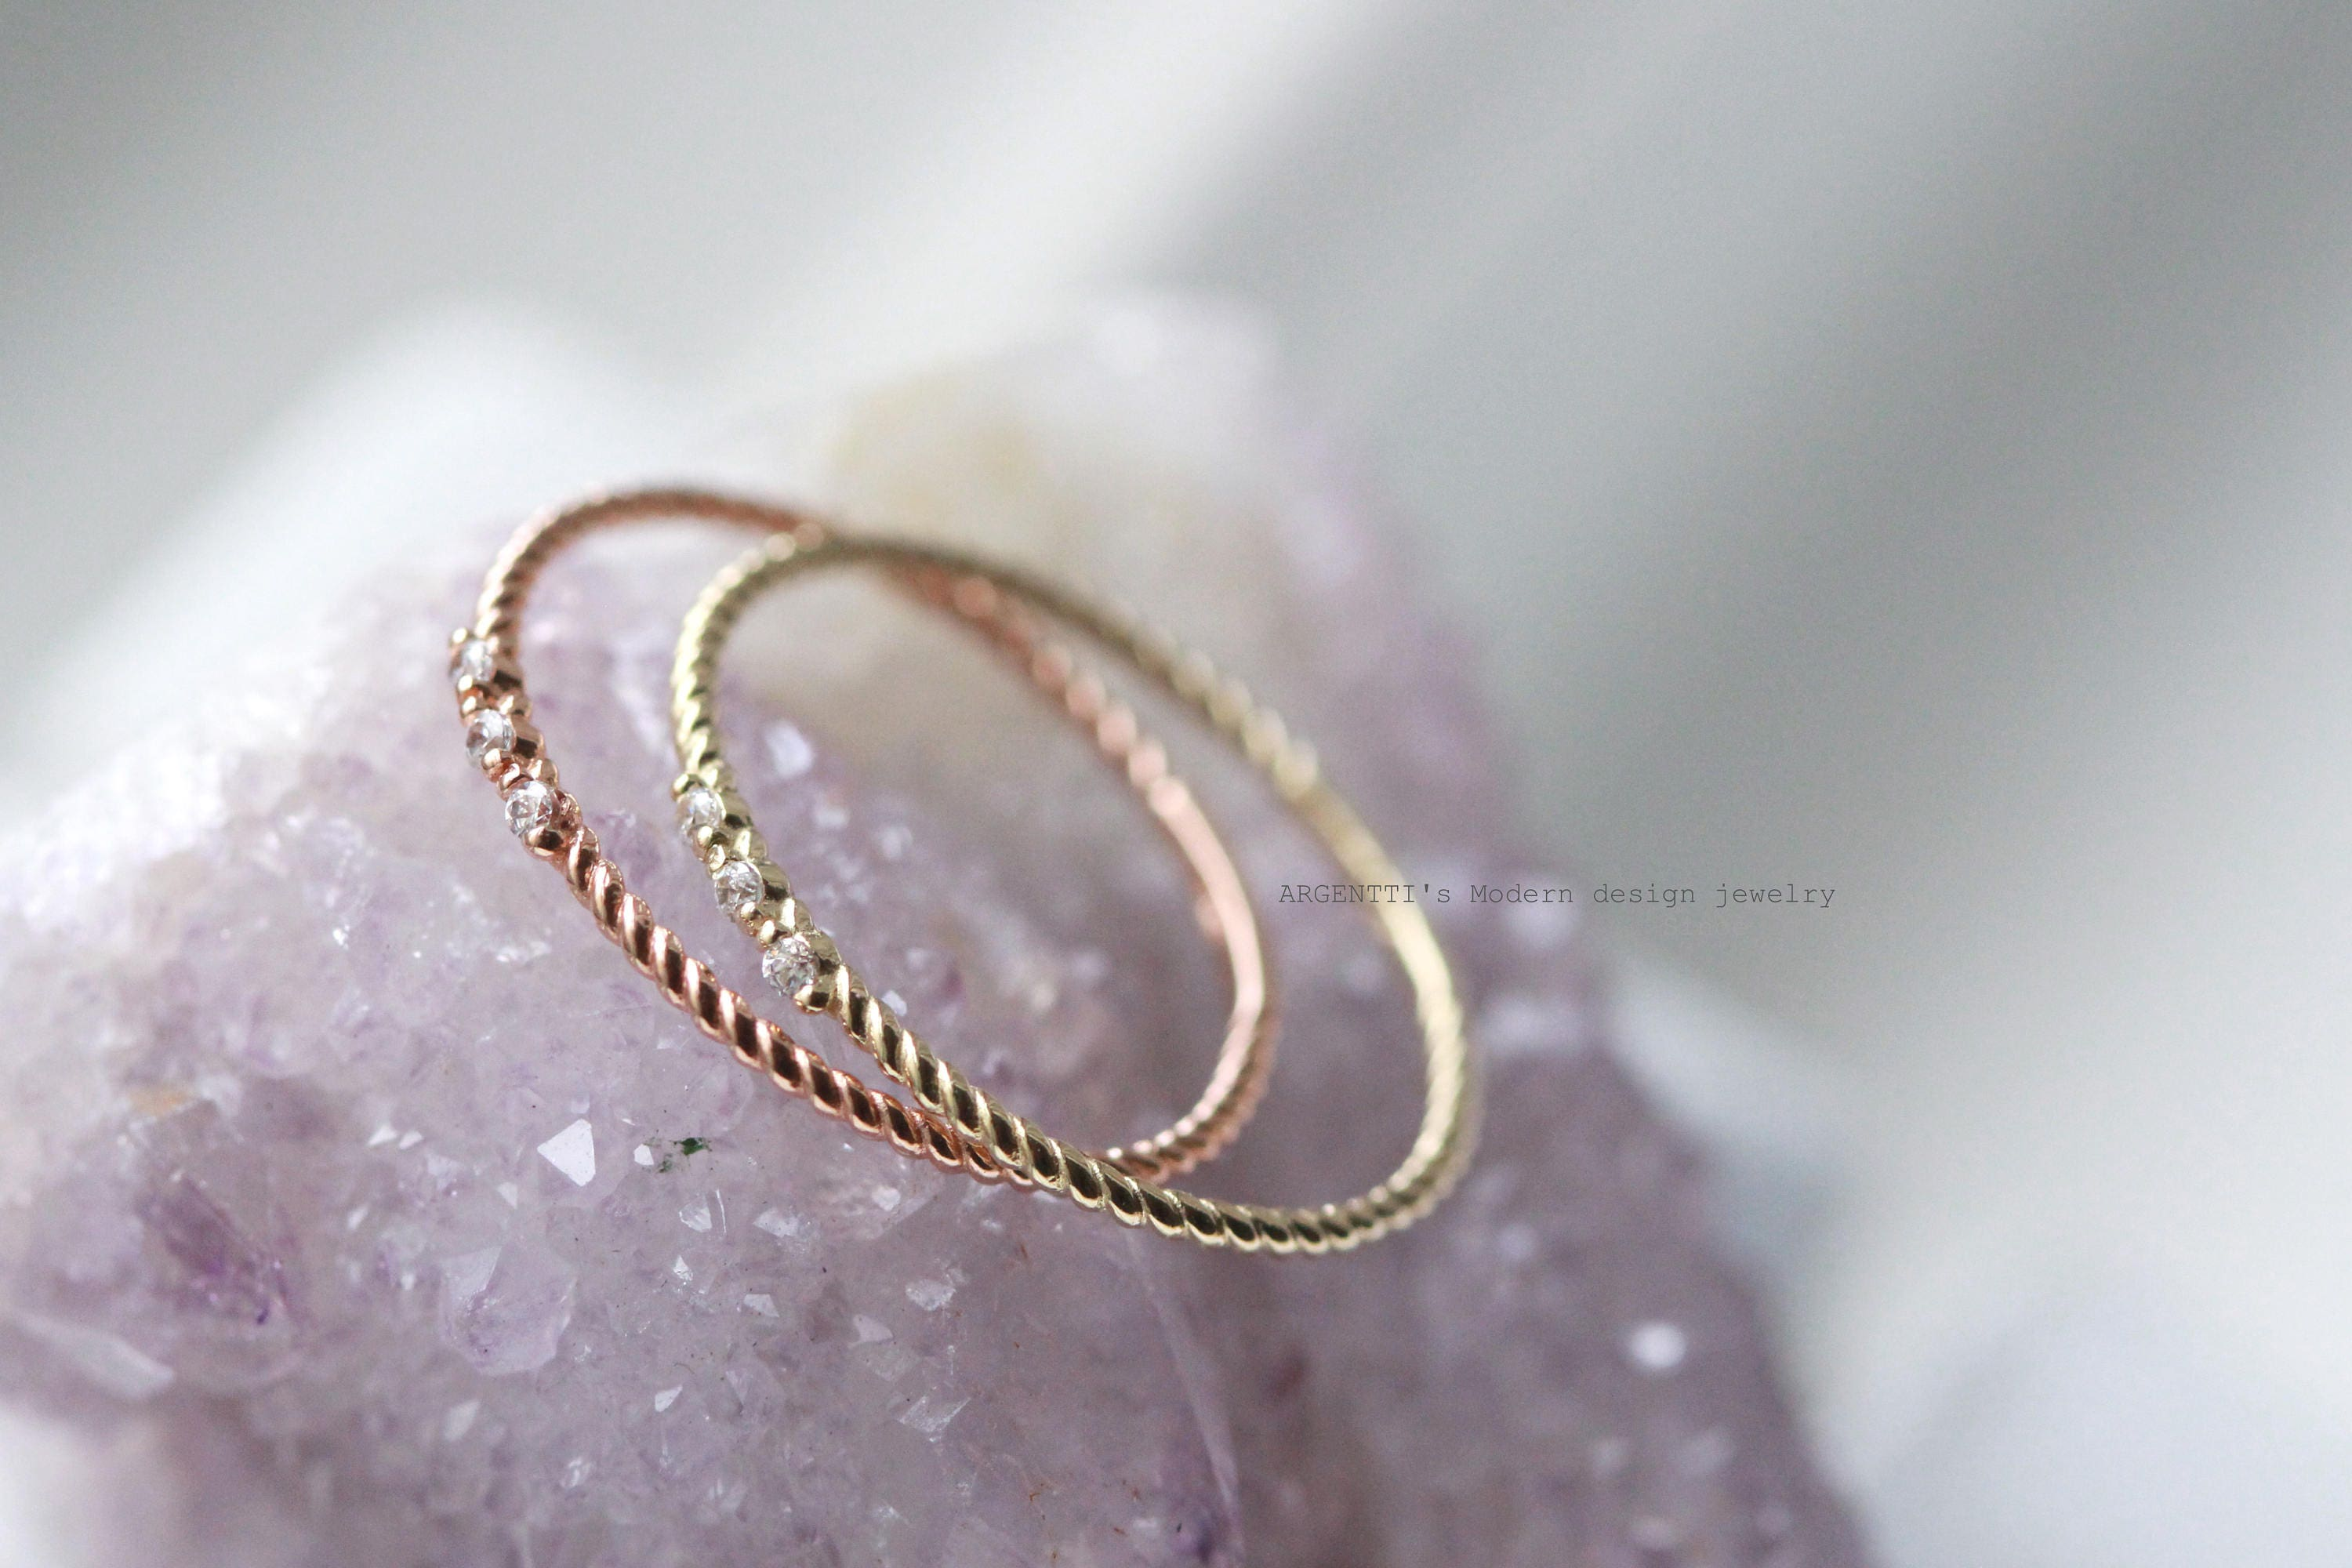 stacking bandtiny ringskinny skinny kabz ringstackingthin finger il p ring gold pipe geometric ringstop rings in fullxfull midi thin goldsimple ringpromis